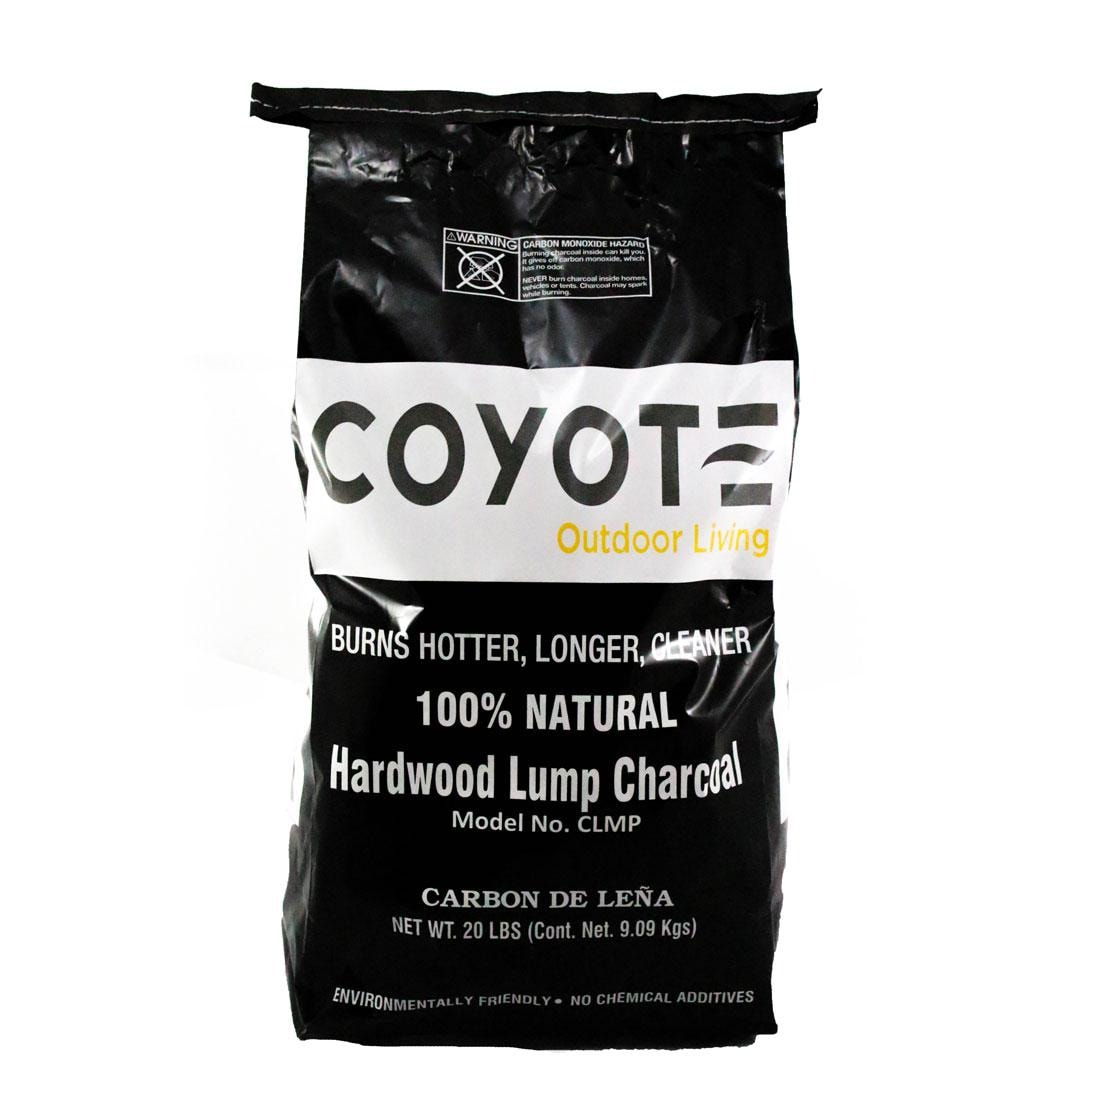 Coyote  Natural Hardwood Lump Charcoal - 20 Lbs - CLMP